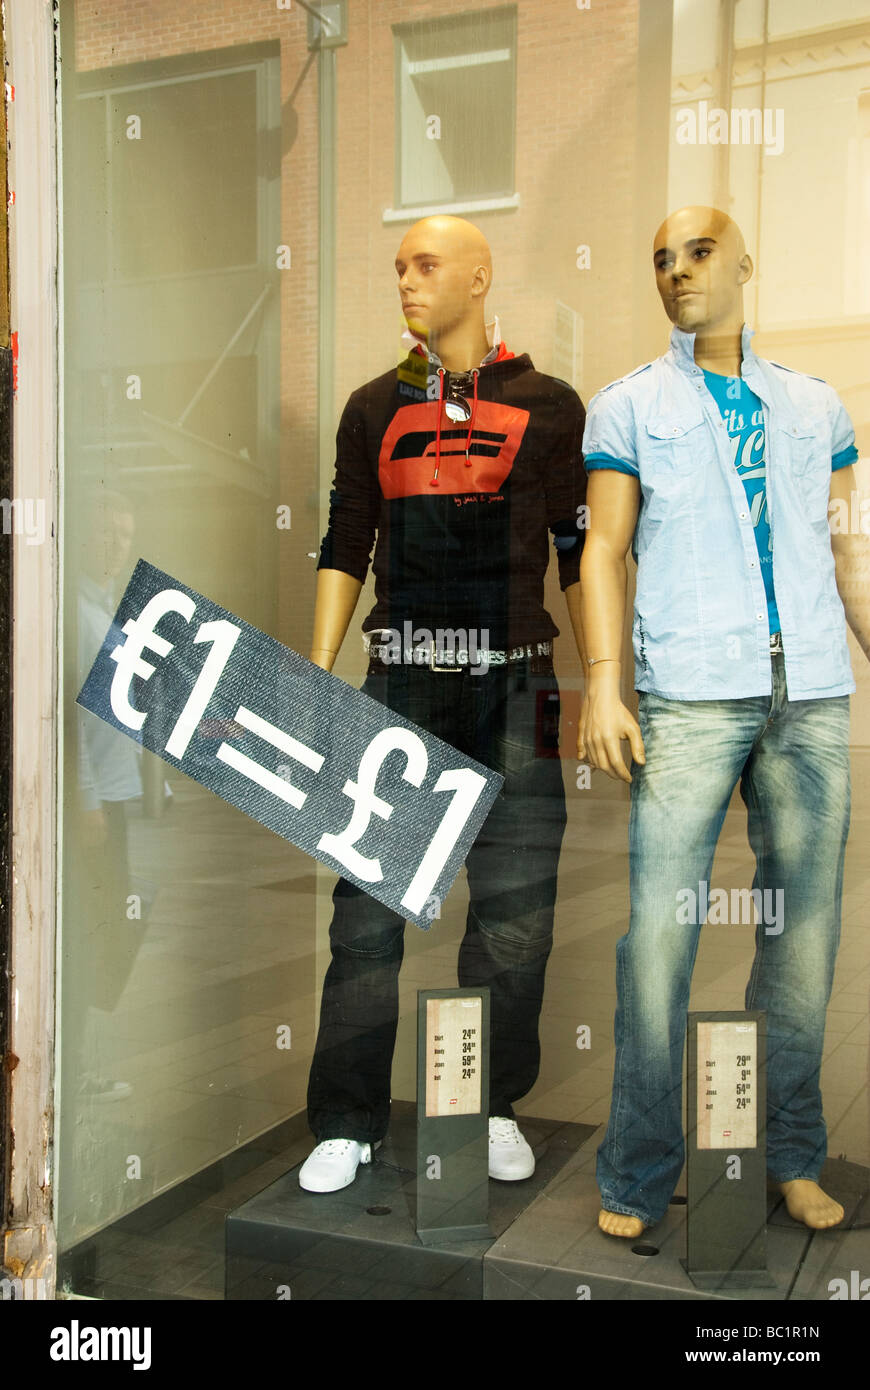 Belfast clothes shop One euro equals one pound Stock Photo